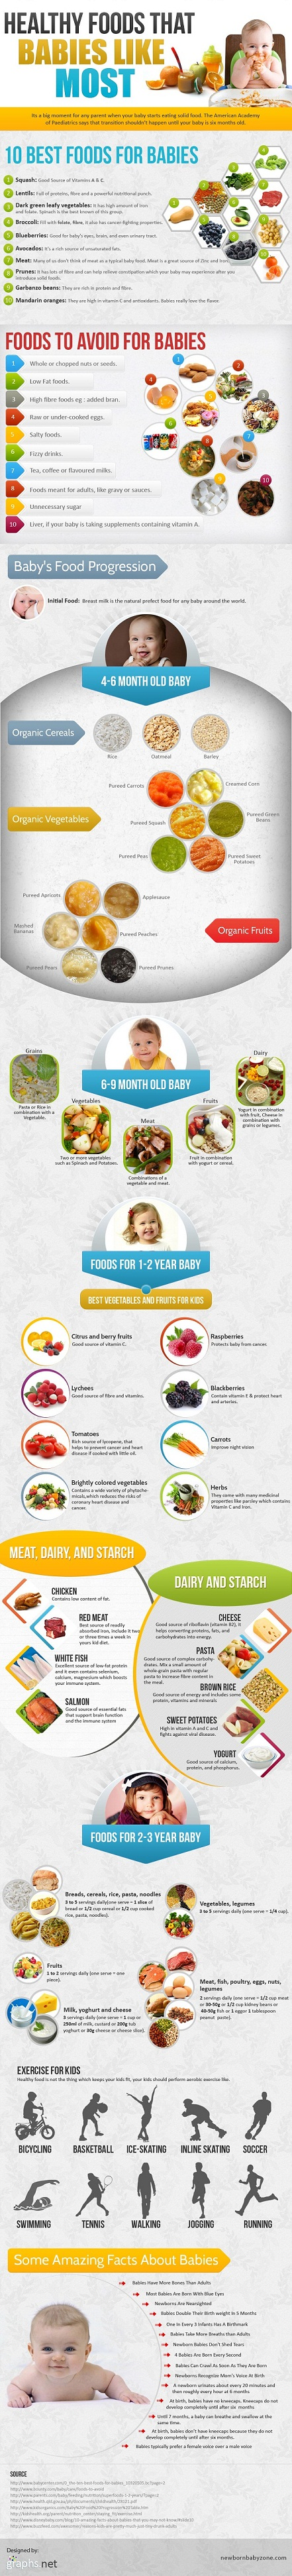 Baby Nutrition Guide-Infographic